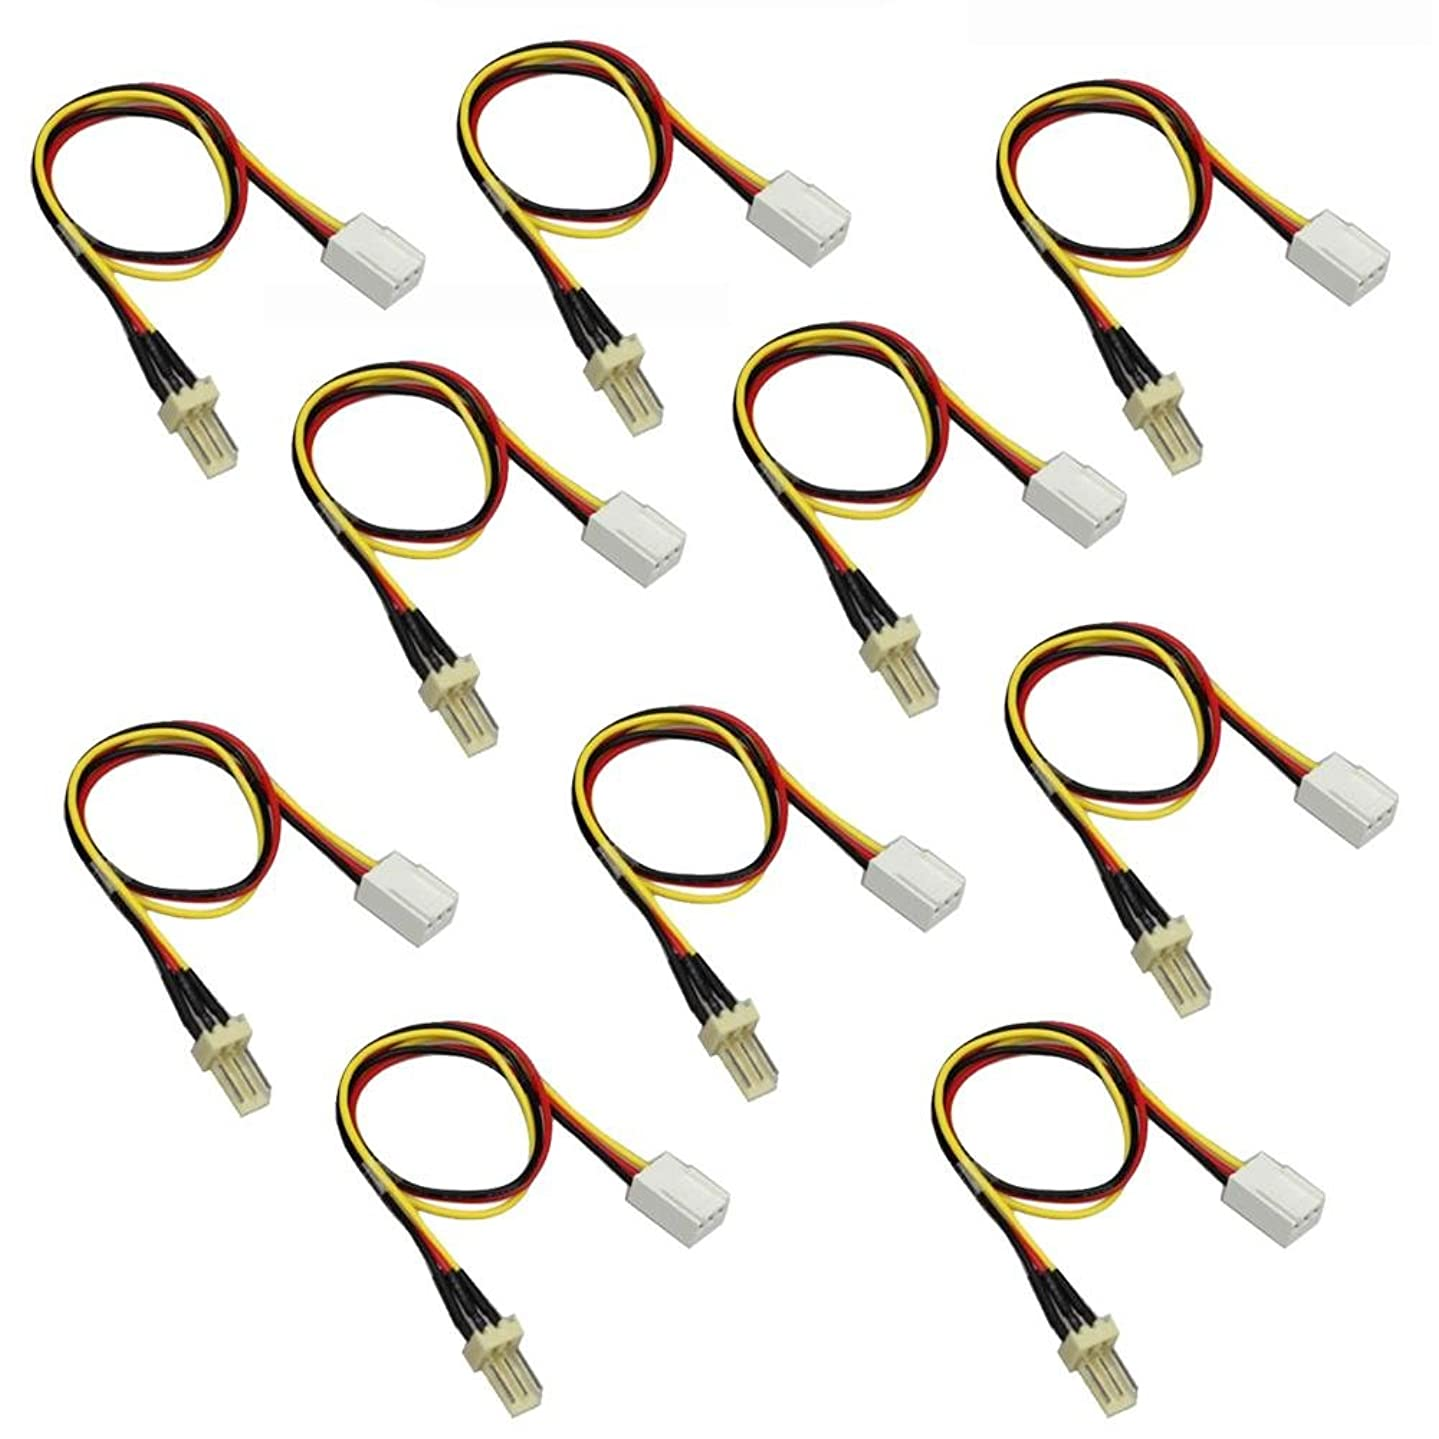 sikiwind 10pcs 3-Pin Male to 3-pin Female PC Fan Power Extension Lengthen Cable 12V